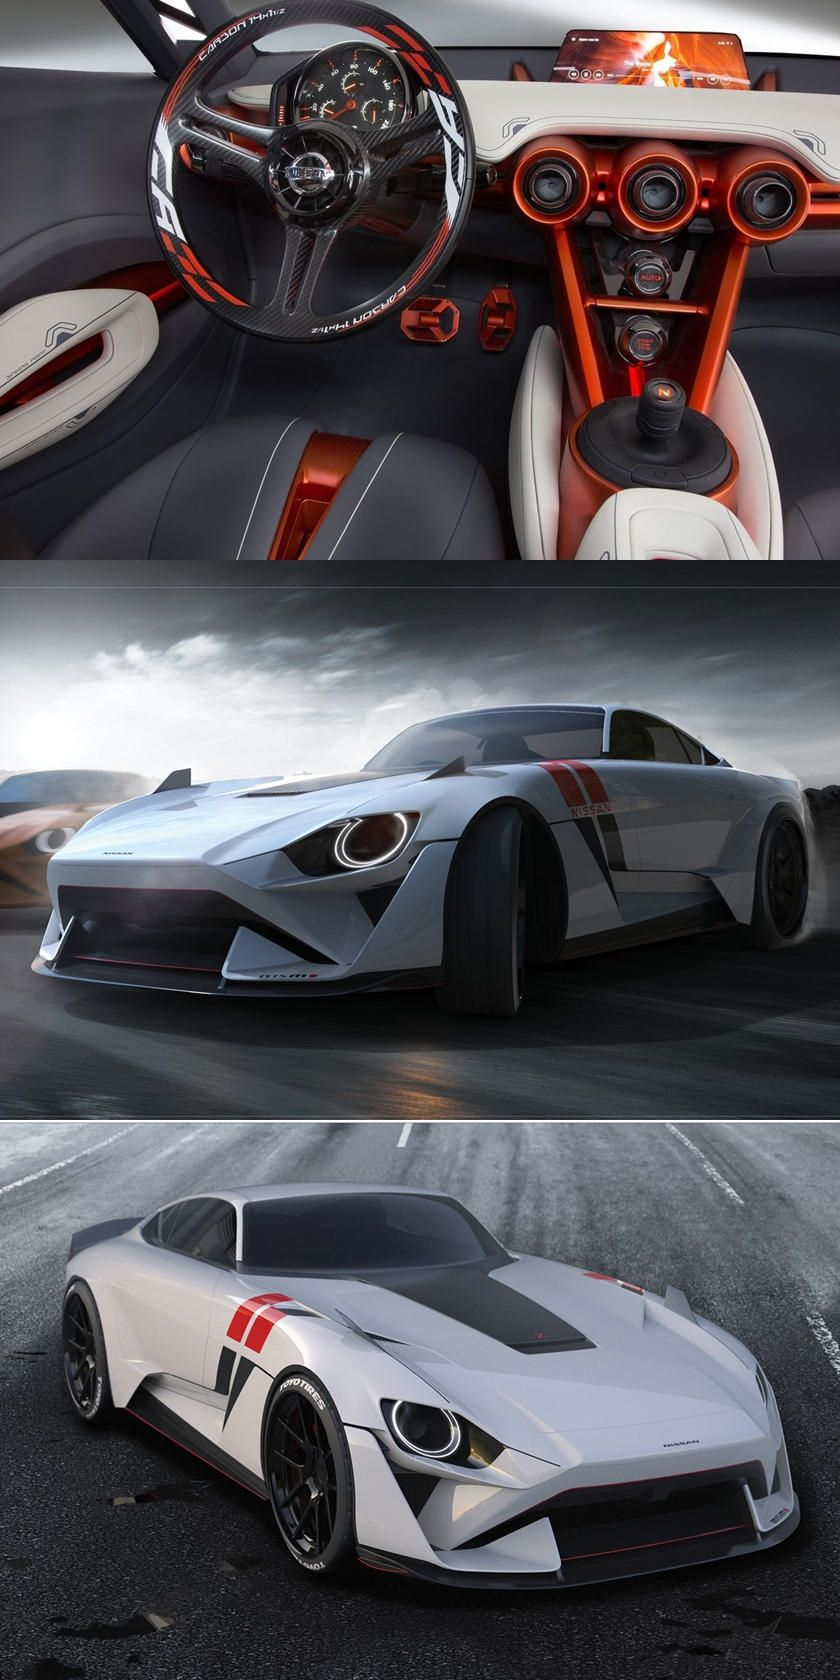 The Nissan 400z Could Be In Trouble Nissan Is Developing A New Z Car That Much Is Certain But Will It Ever Make It To Mar In 2020 Nissan Nissan